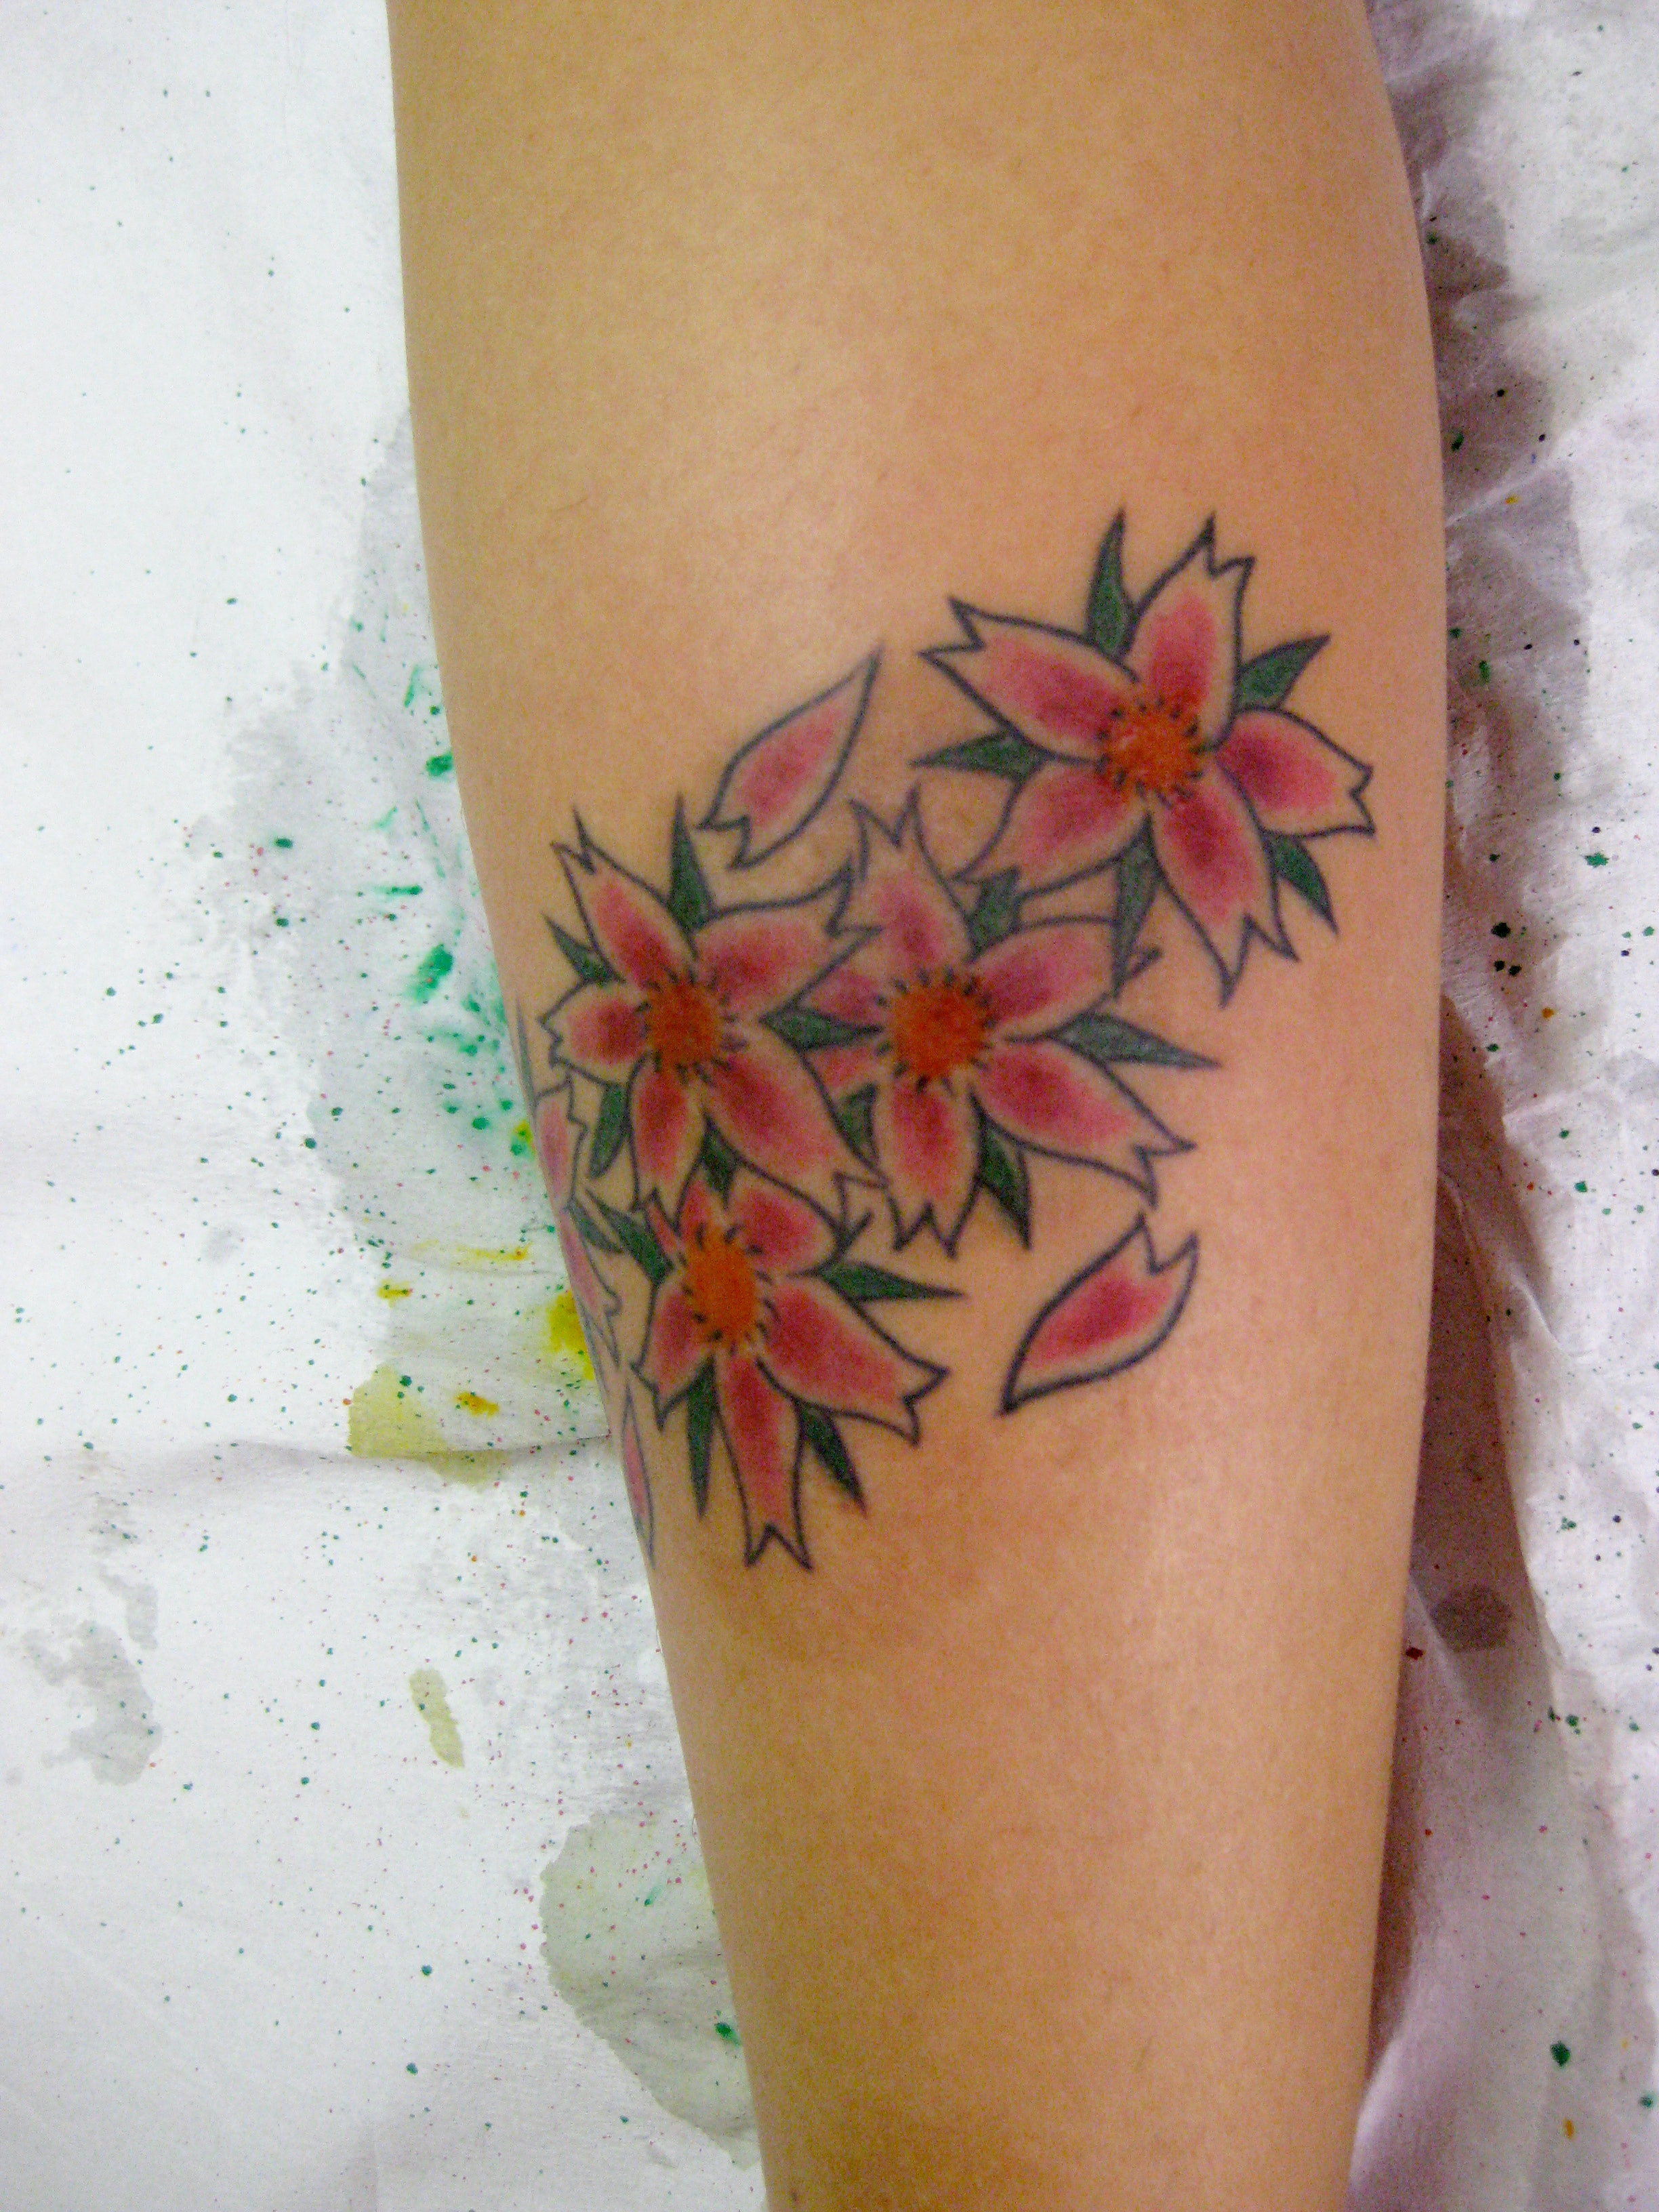 15 Pretty Flower Tattoos That Prove Floral Tattoos Arent Just About